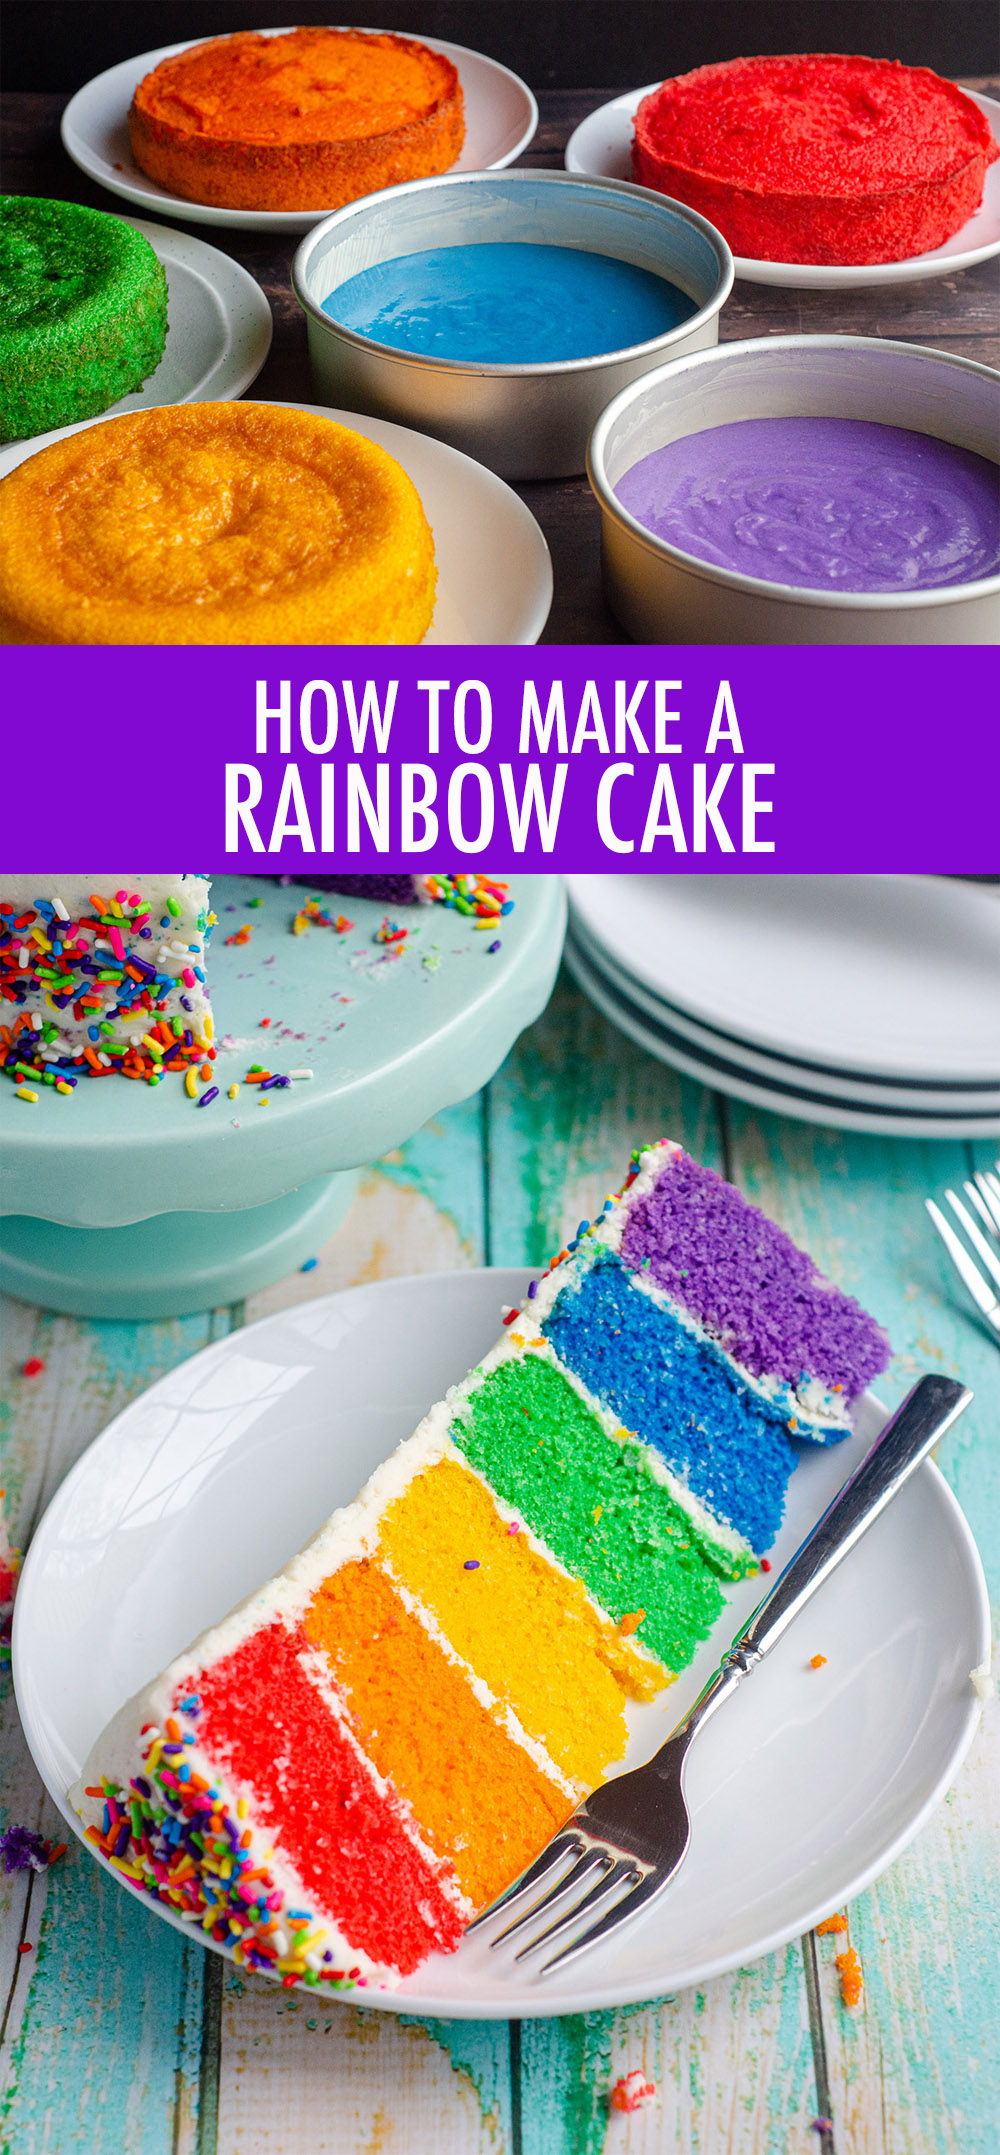 Learn how to make this show-stopping cake AND learn how to scale it to your needs. It's easier than you think but makes an incredible conversation piece!